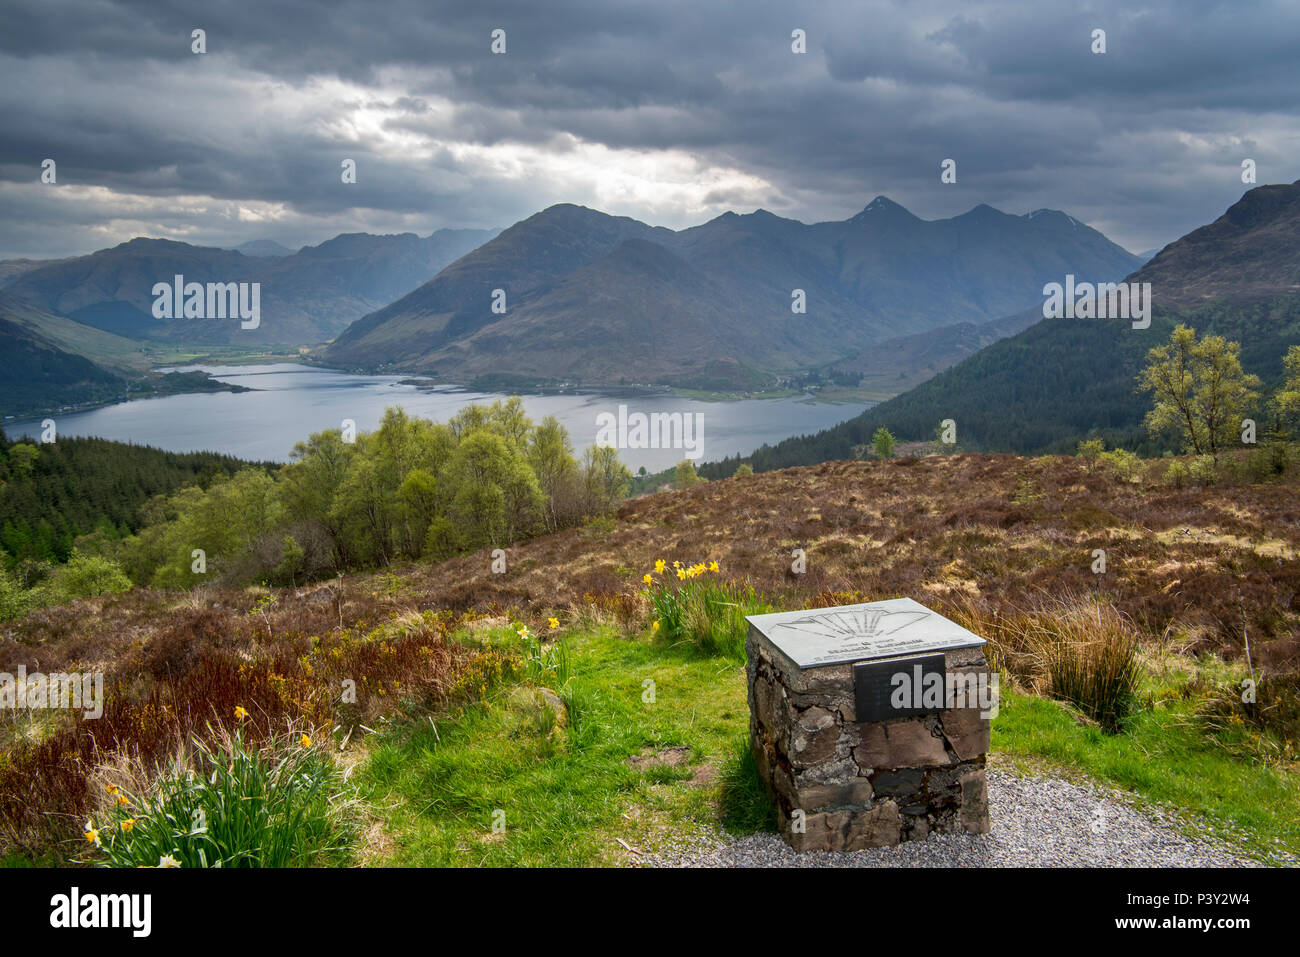 Orientation table at the Bealach Ratagain / Ratagan viewpoint with names of the mountain summits of the Five Sisters of Kintail, Highland, Scotland - Stock Image